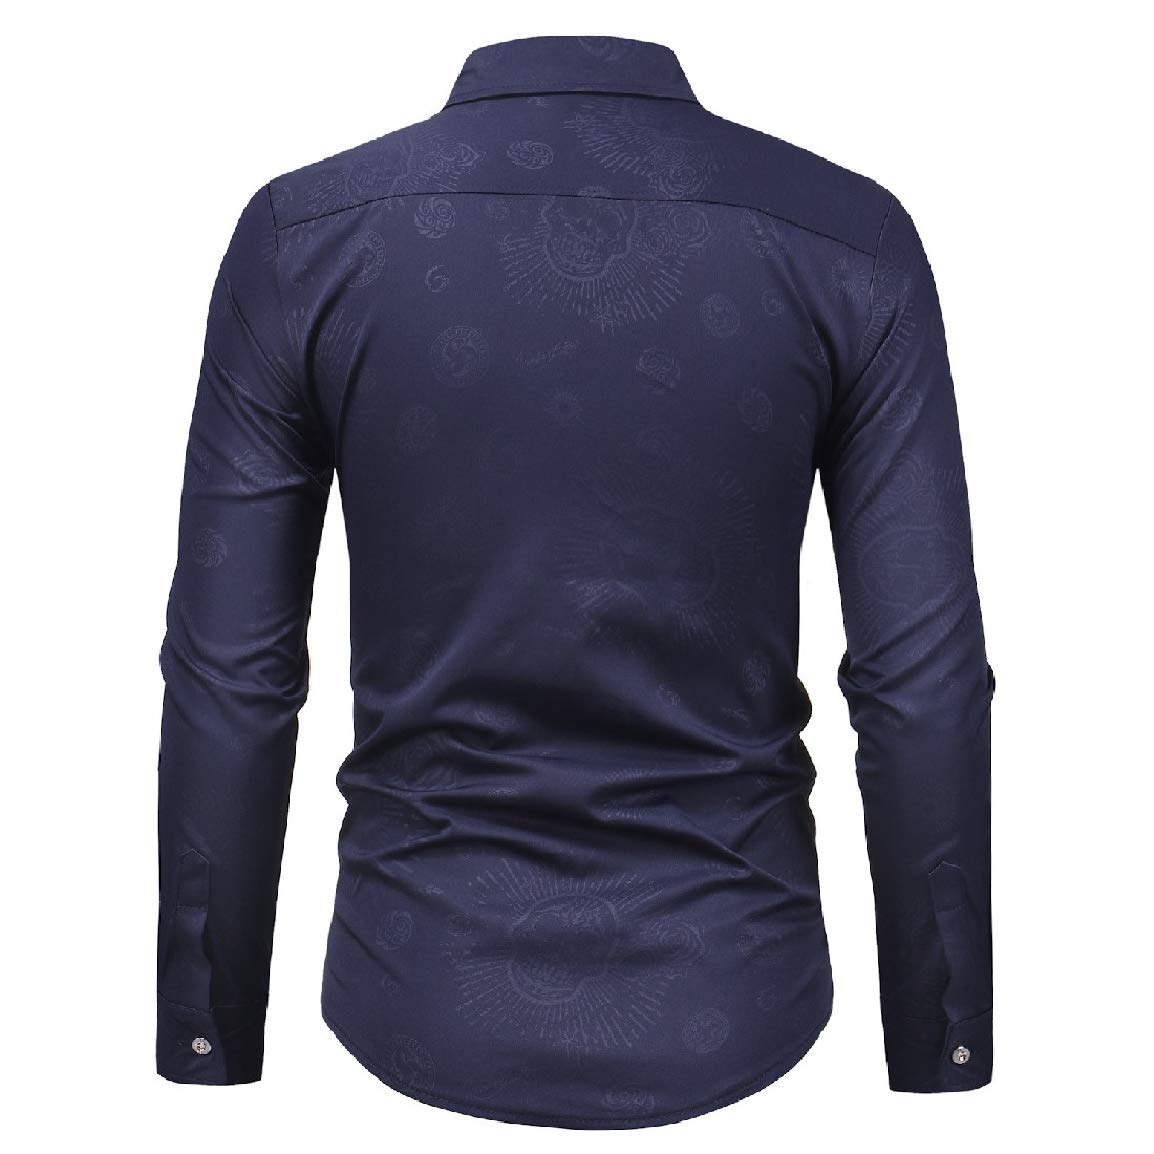 Nicelly Mens Dark Bands Turn Down Collar Casual Long-Sleeve Fitted Shirt